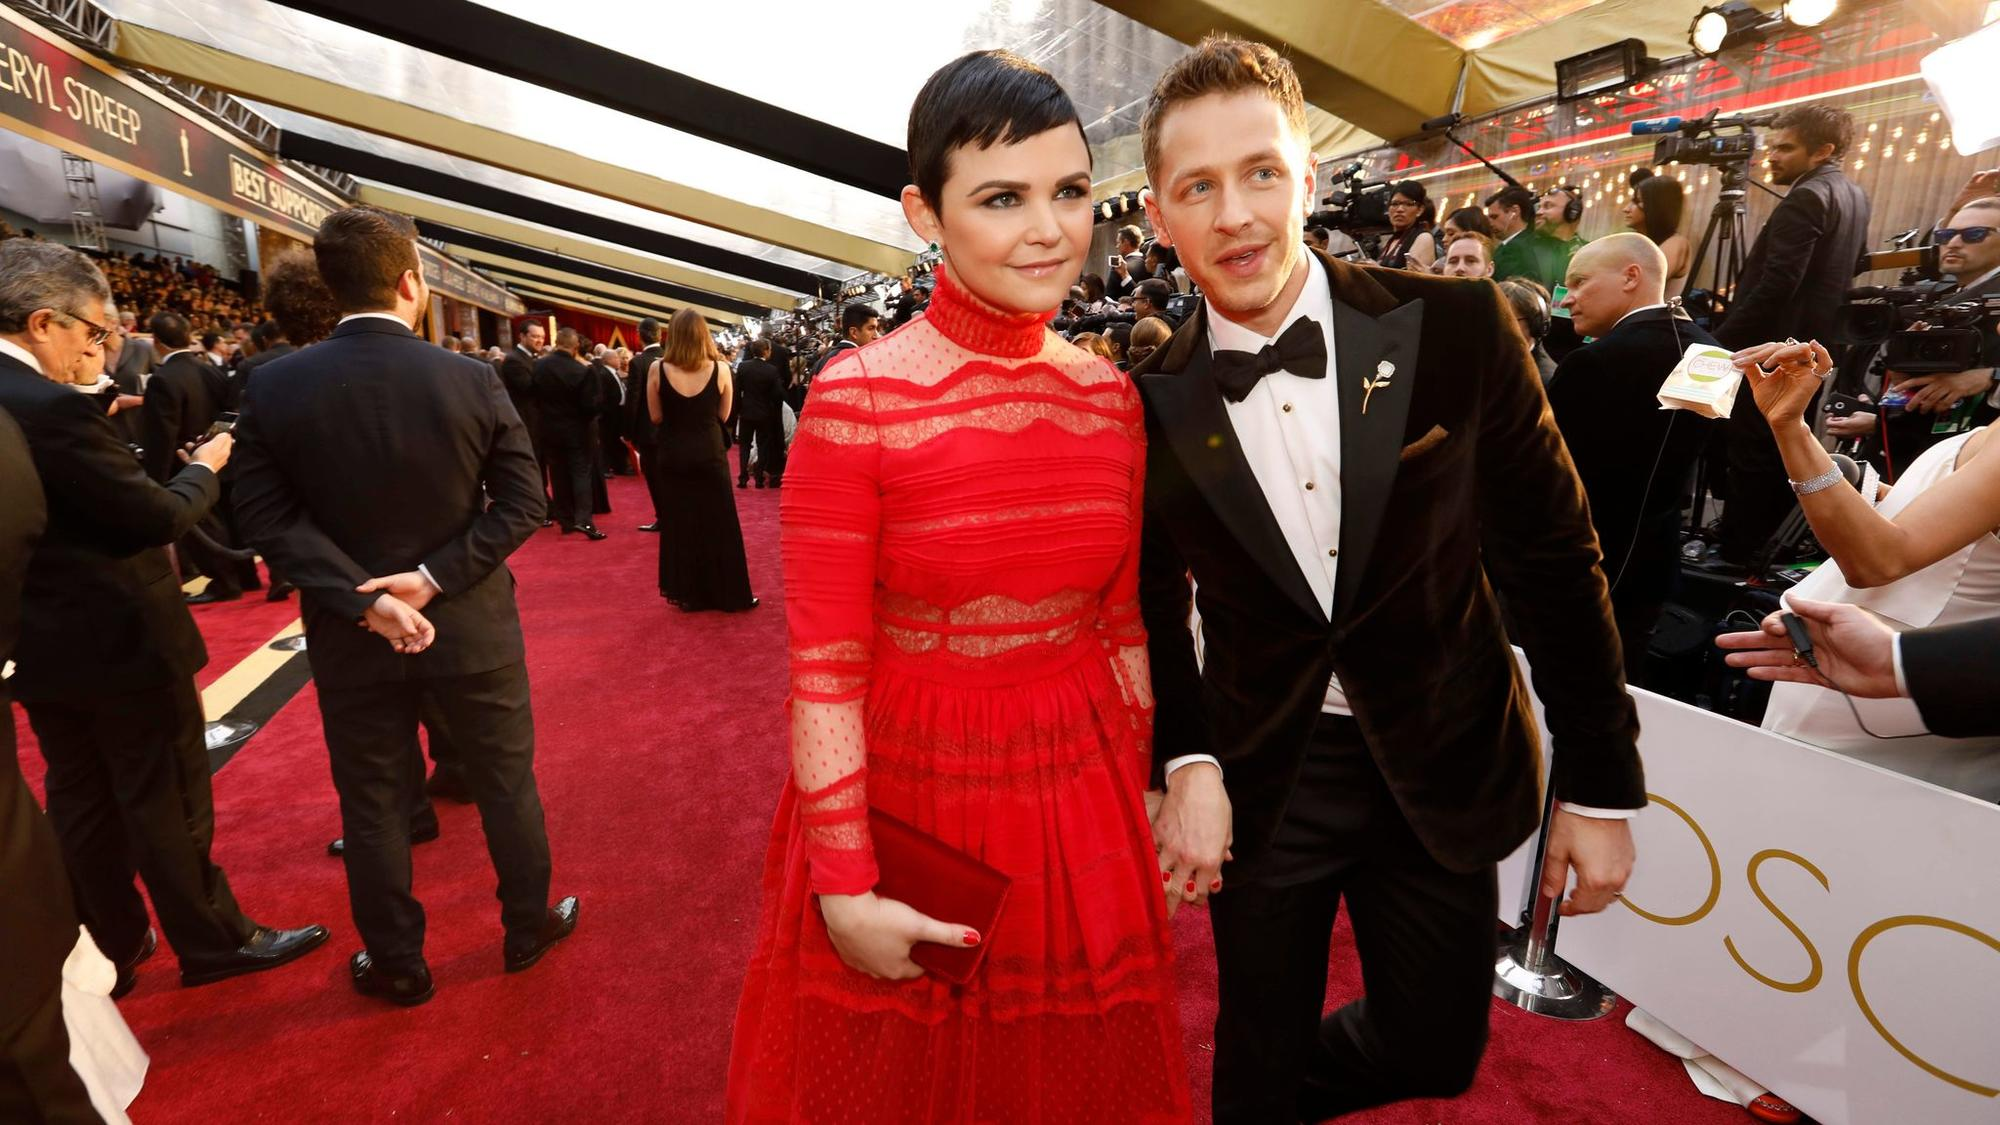 Ginnifer Goodwin, left, and Josh Dallas during the arrivals at the 89th Academy Awards on Feb. 26. (Al Seib / Los Angeles Times)